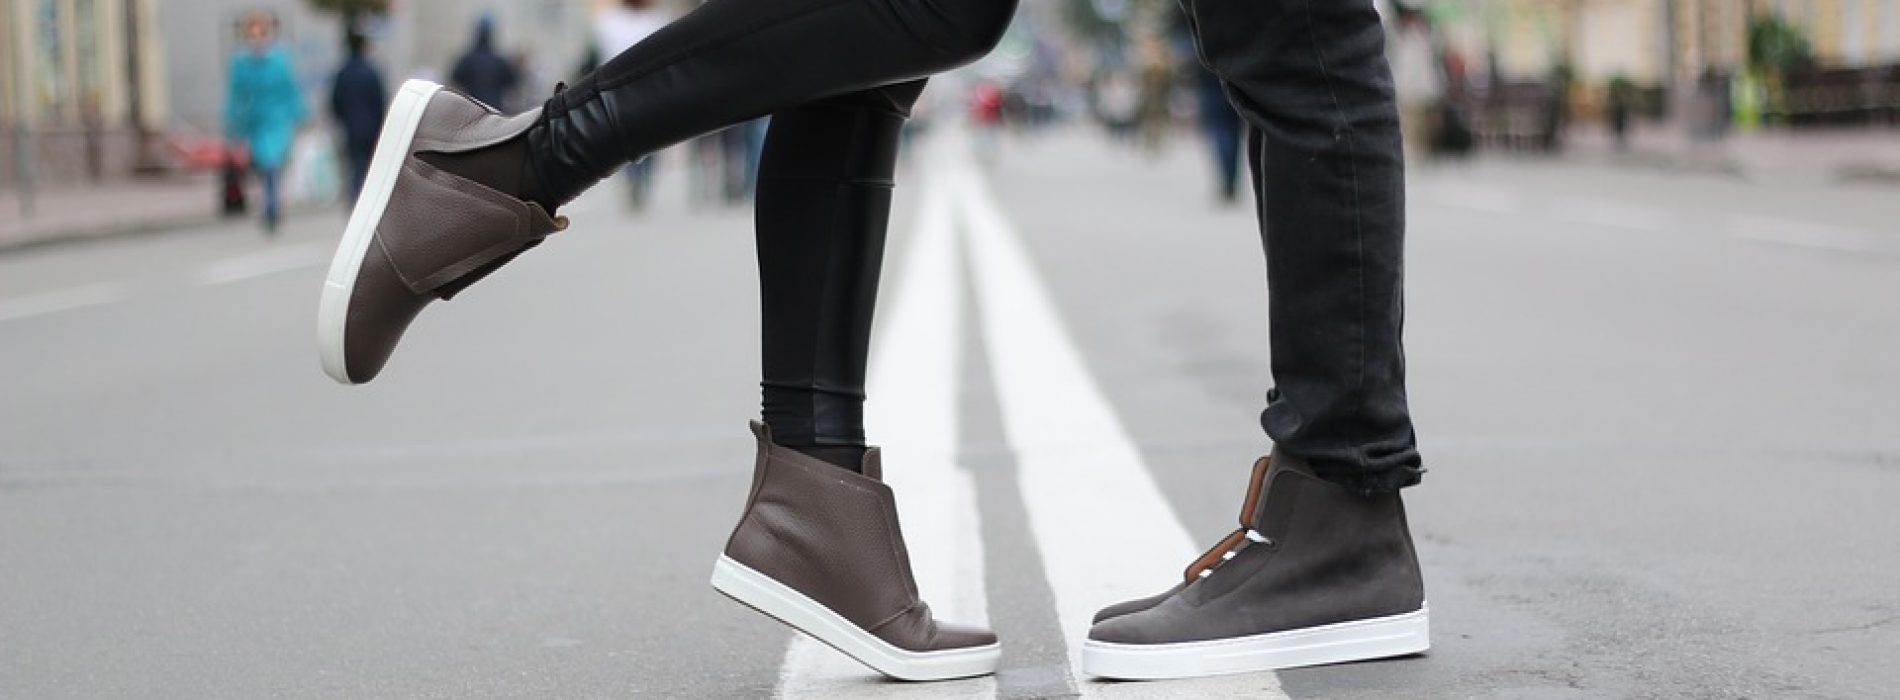 Lab-Grown Leather, Coming to a Shoe Near You